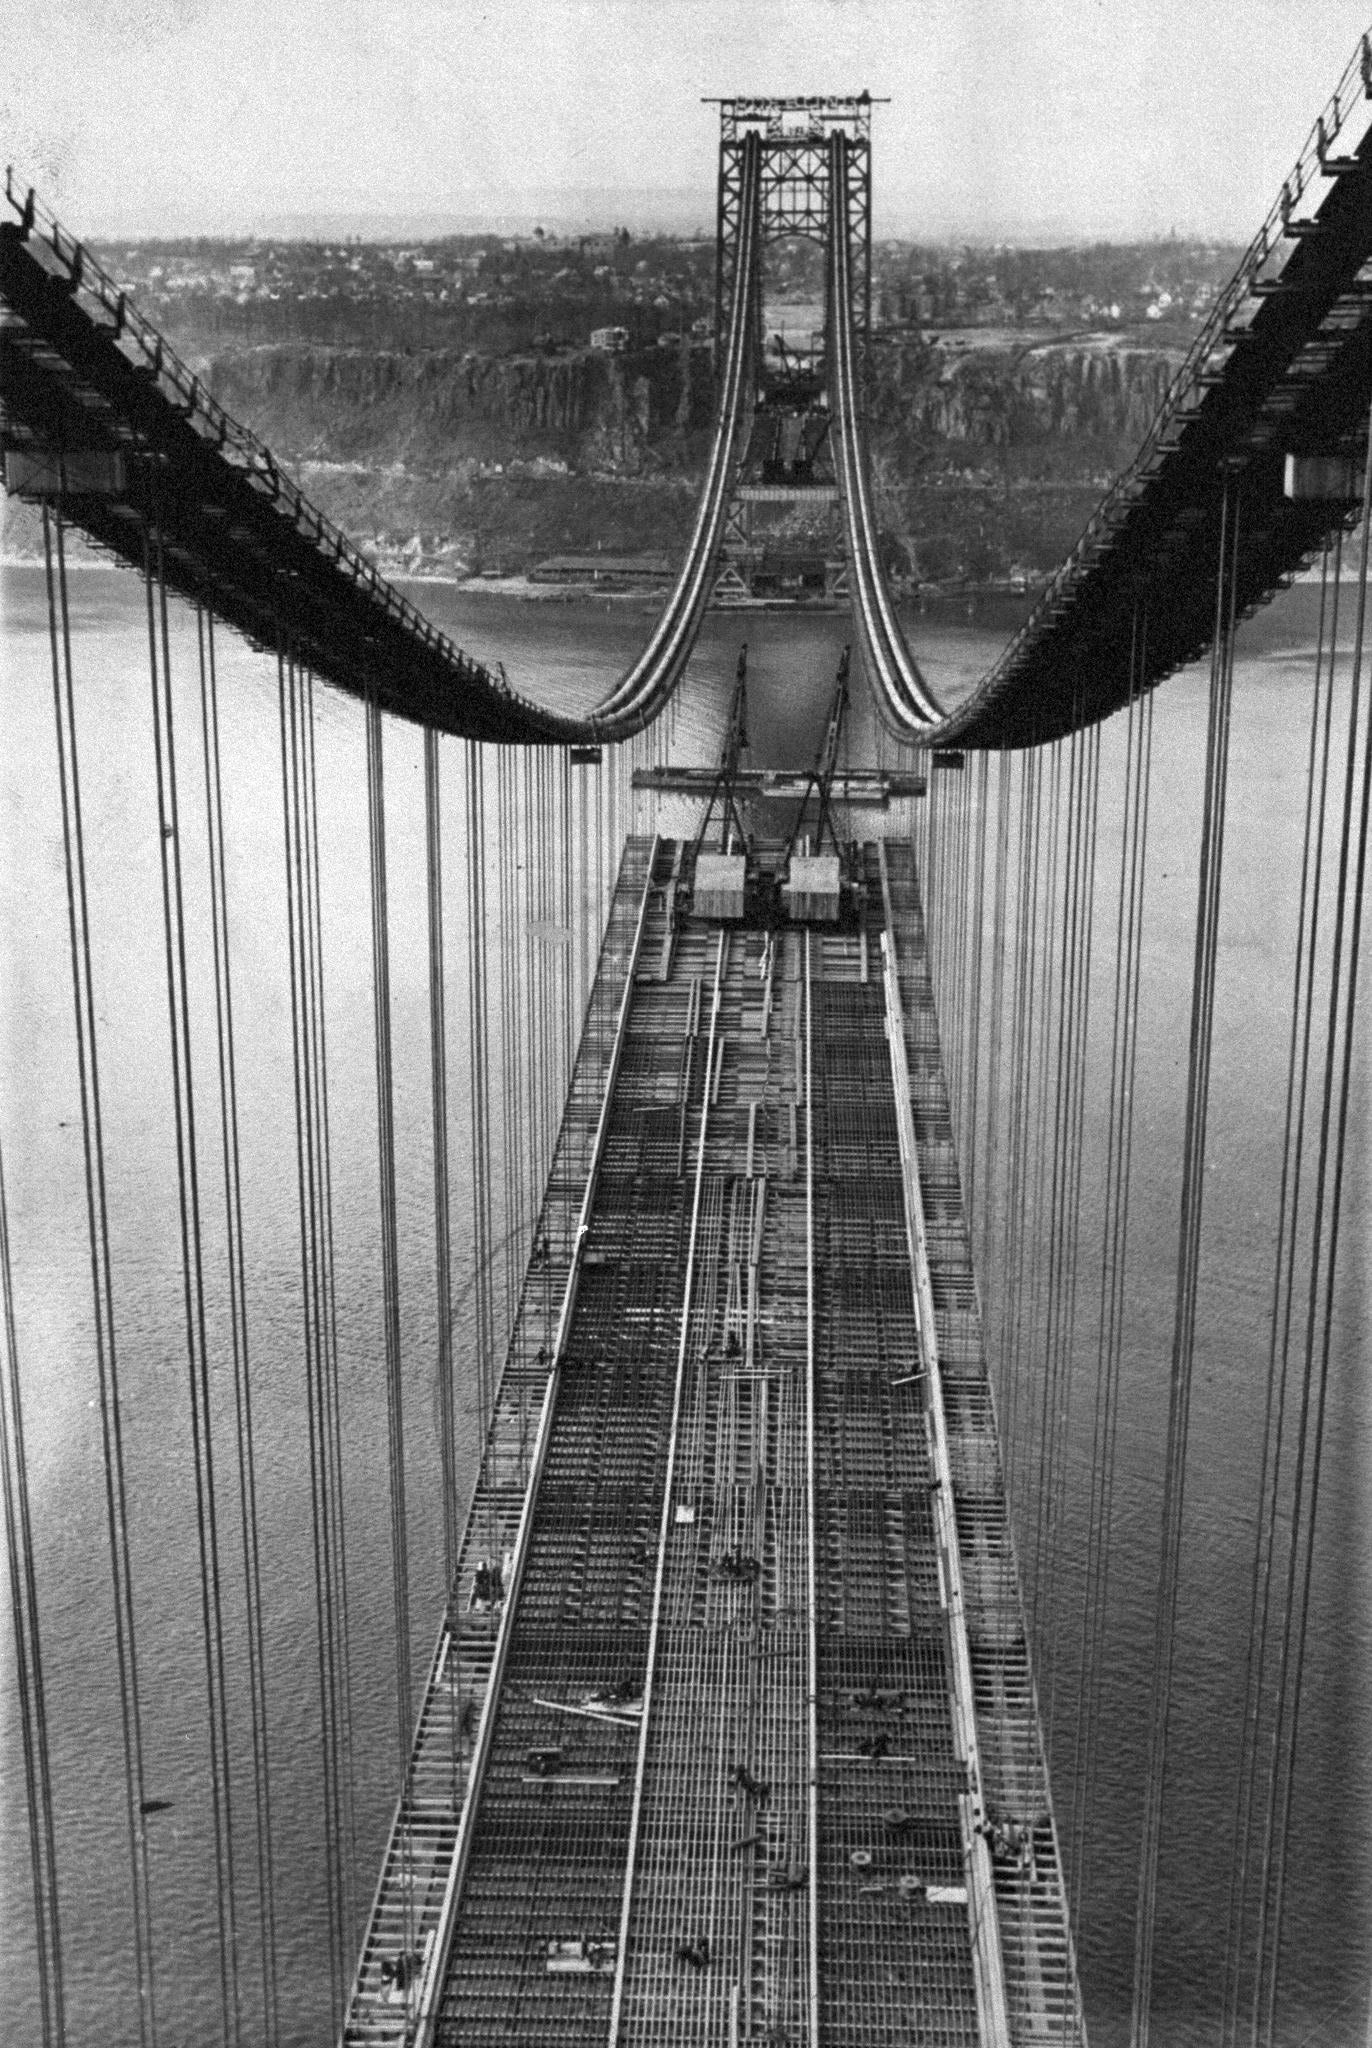 George Washington Bridge. Dec. 21, 1930.